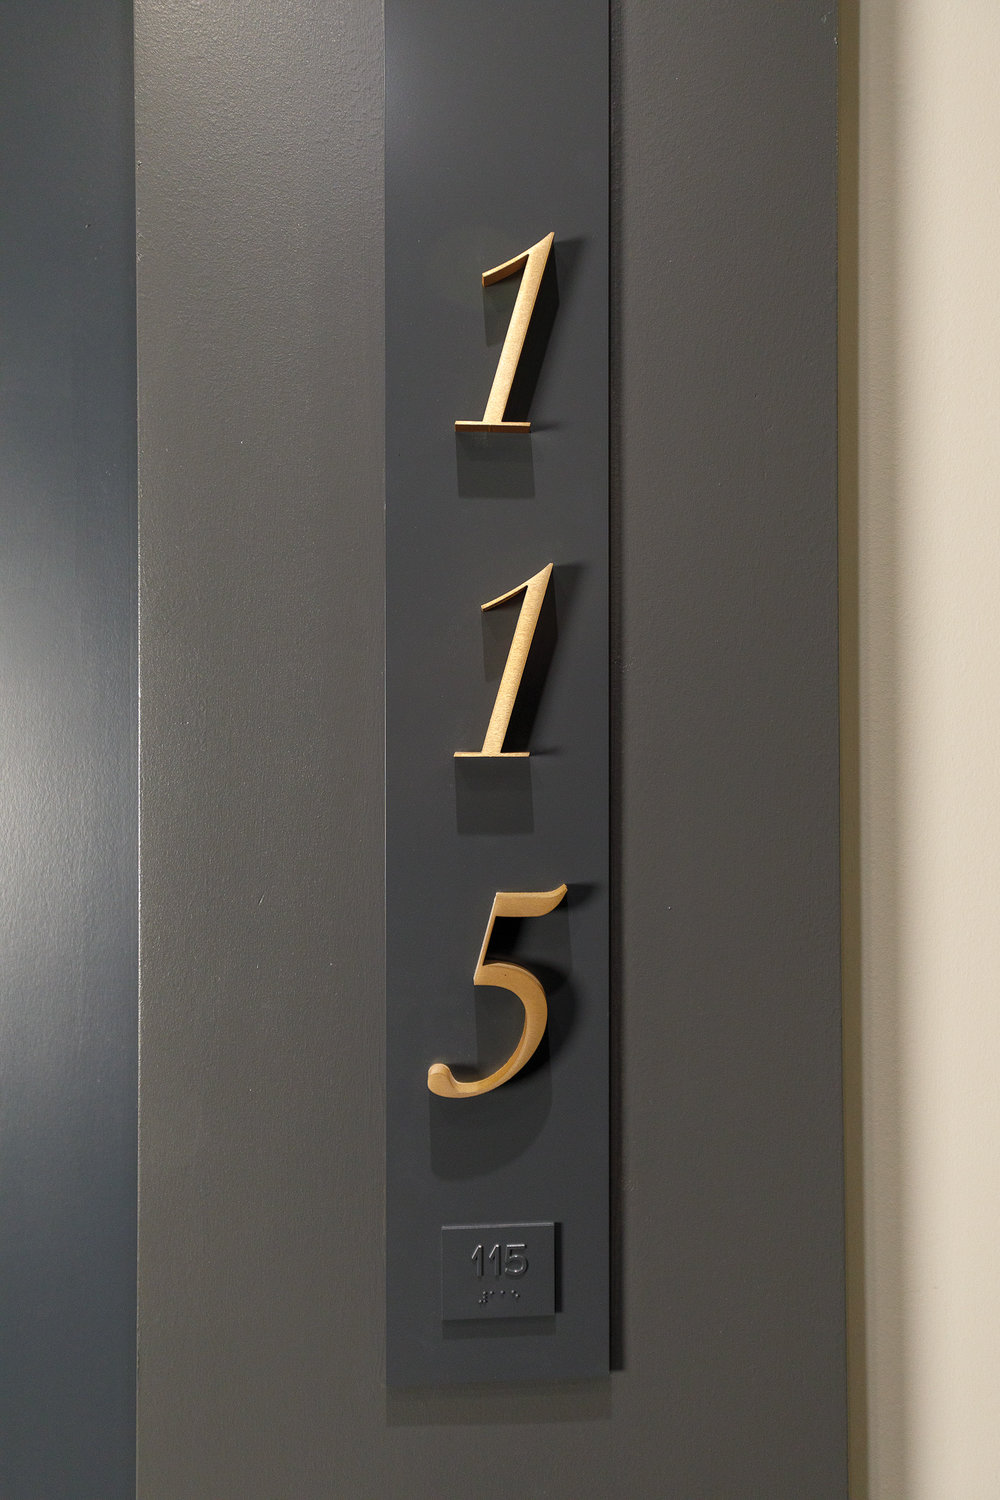 Vertis-Green-Hills_wayfinding-signage_Apartment Numbers__MG_6240_small 2000 px.jpg